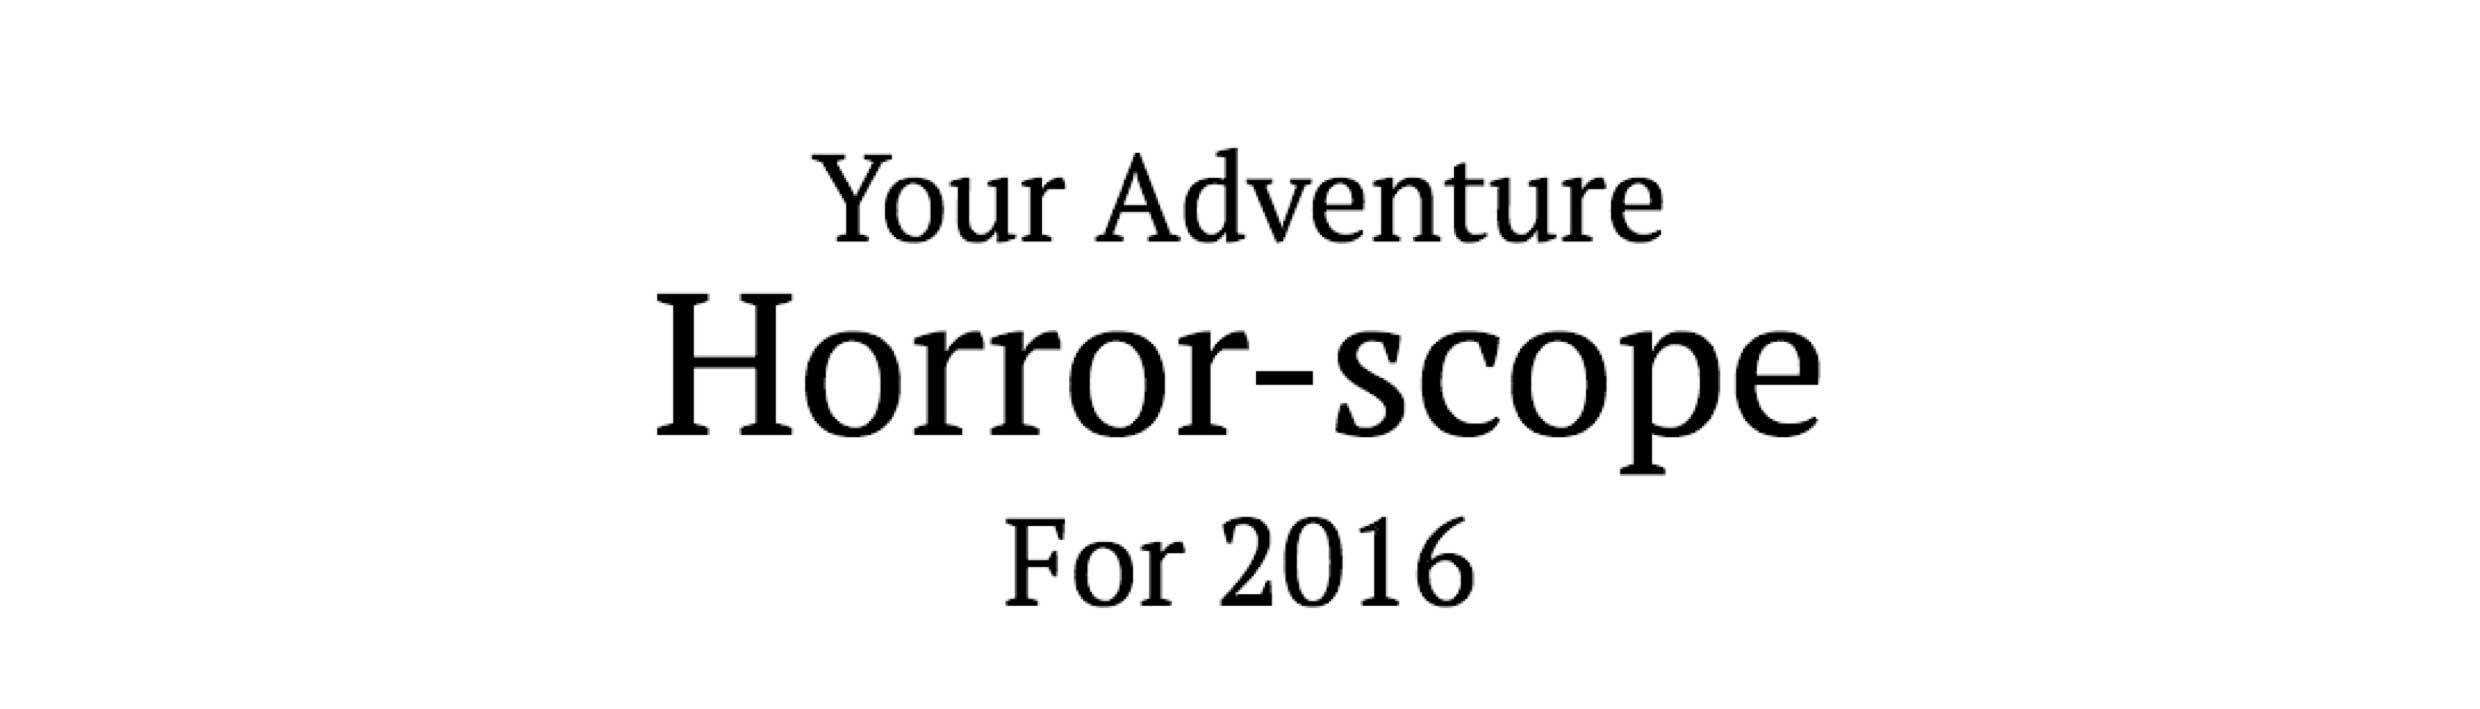 Your Adventure Horror Scope